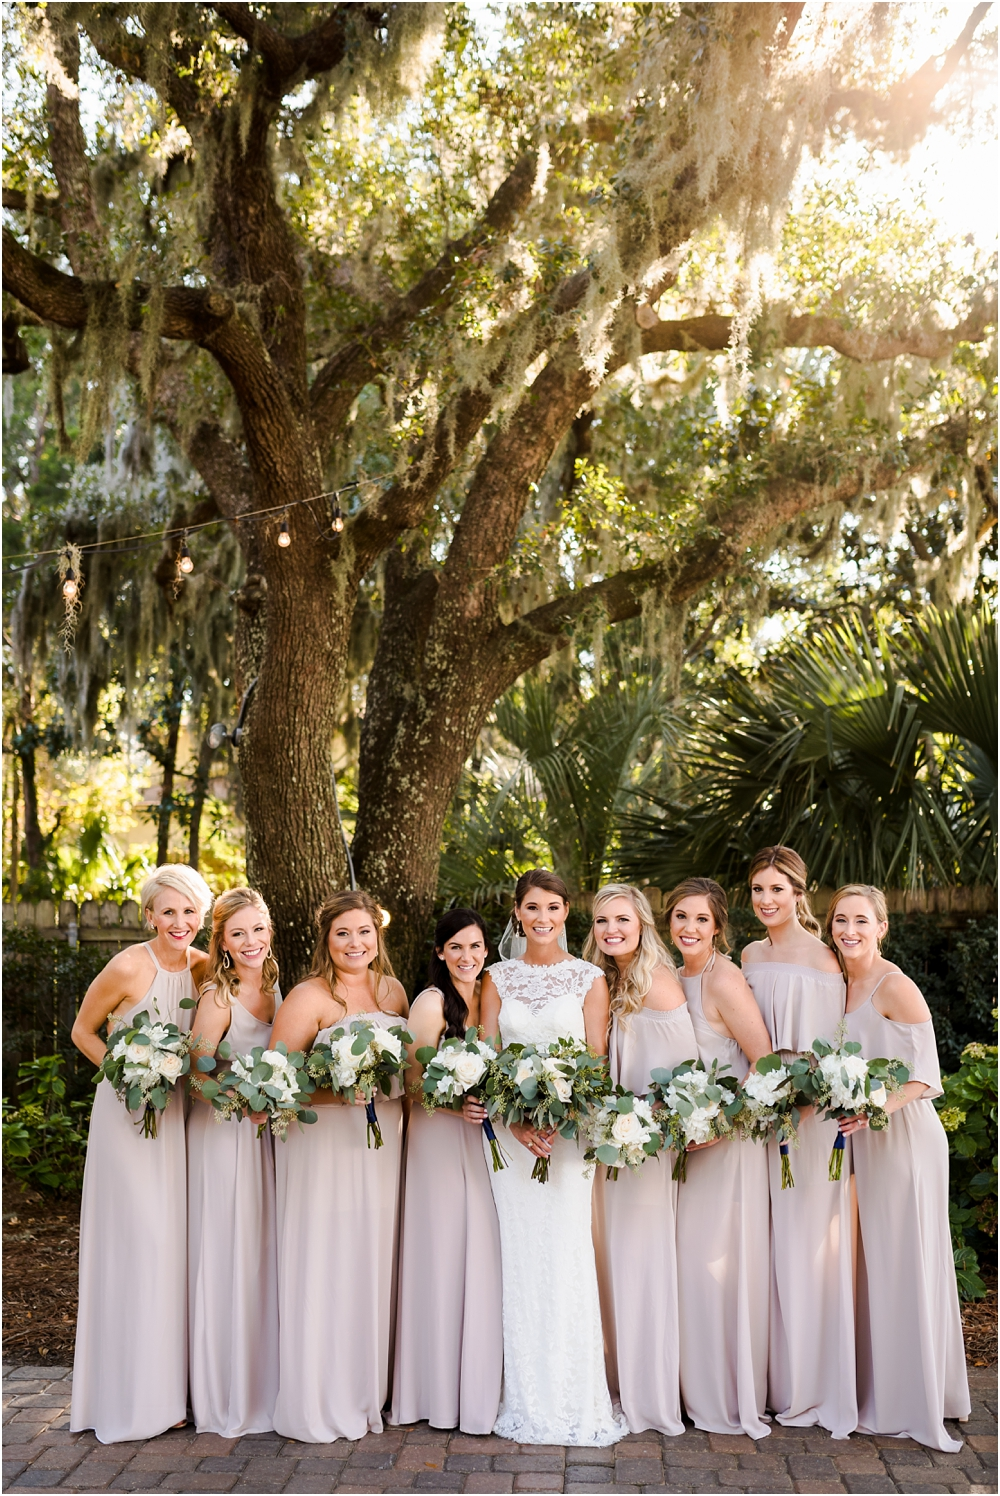 varner-florida-wedding-photographer-30a-panama-city-beach-destin-tallahassee-kiersten-grant-photography-68.jpg